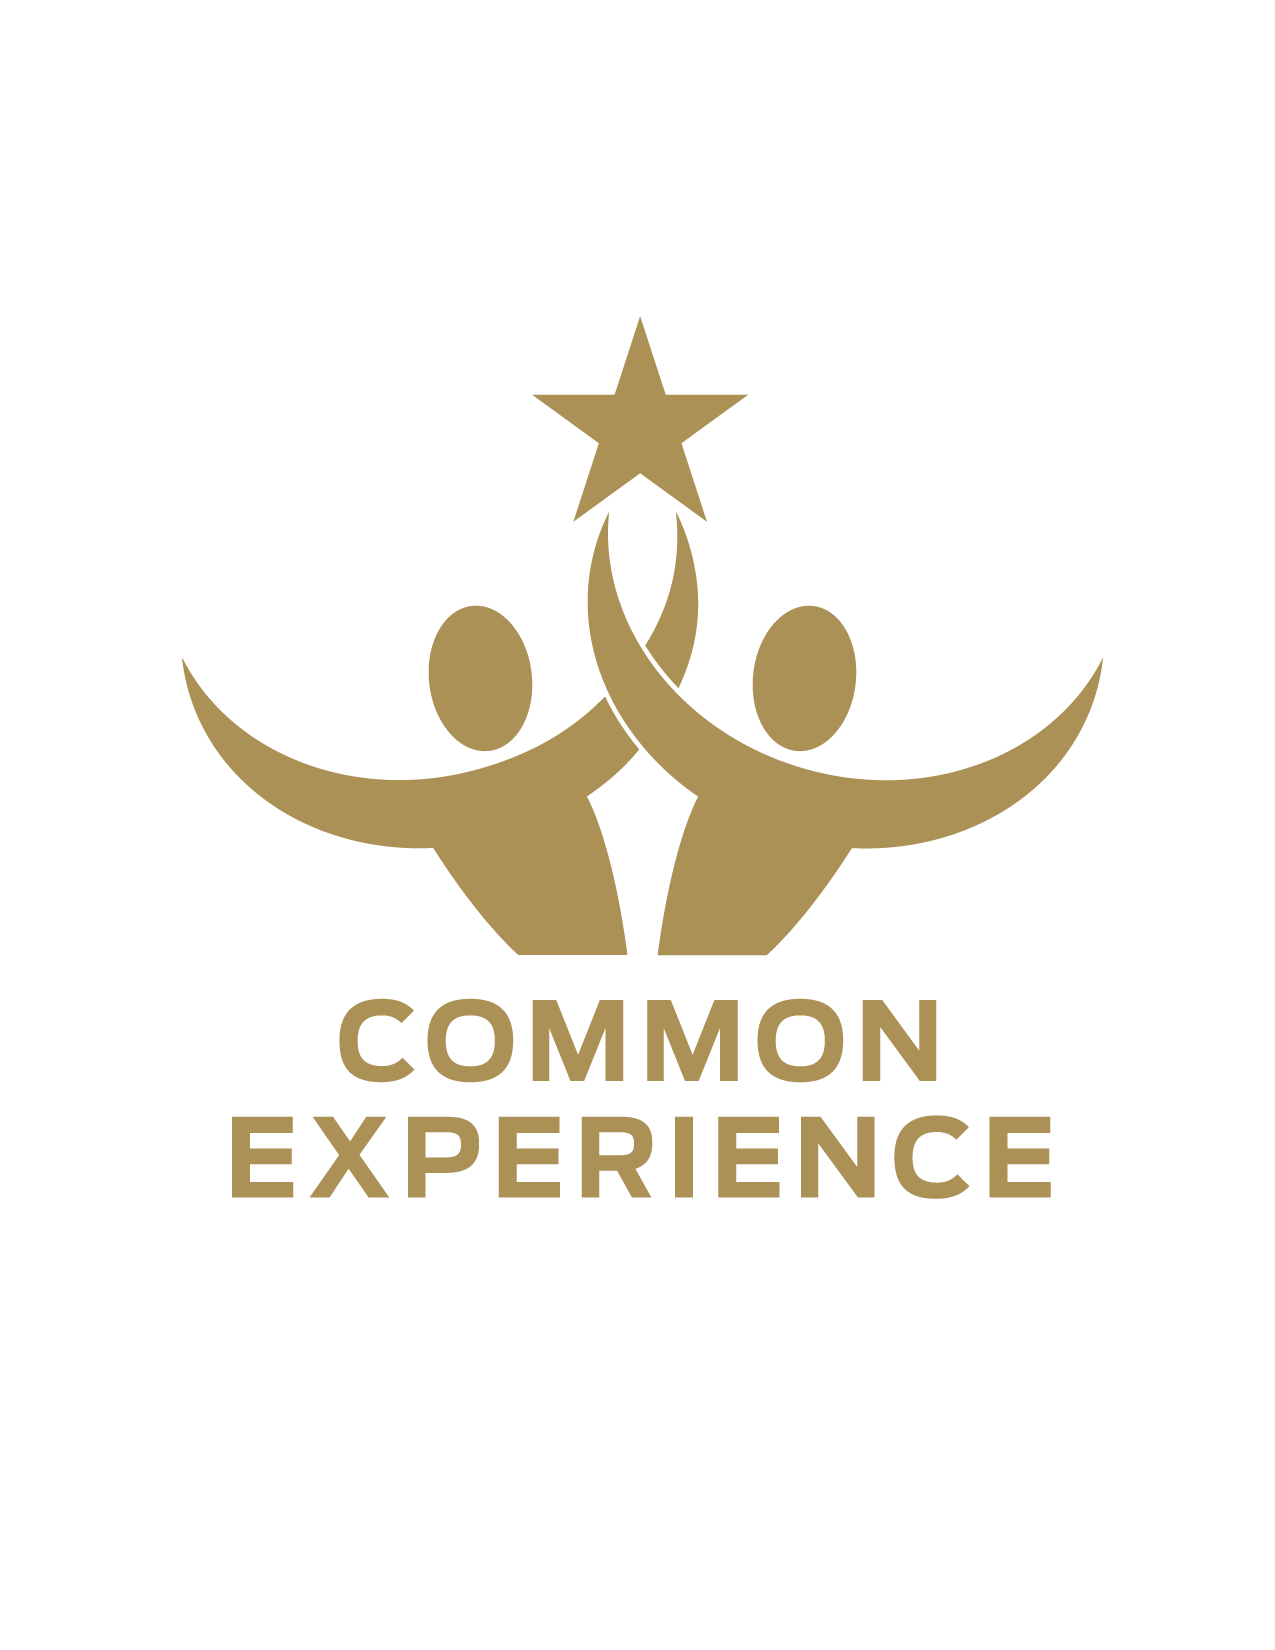 17-424_UNC_Common_Experience_Logos_FINAL_Main Logo Gold.png